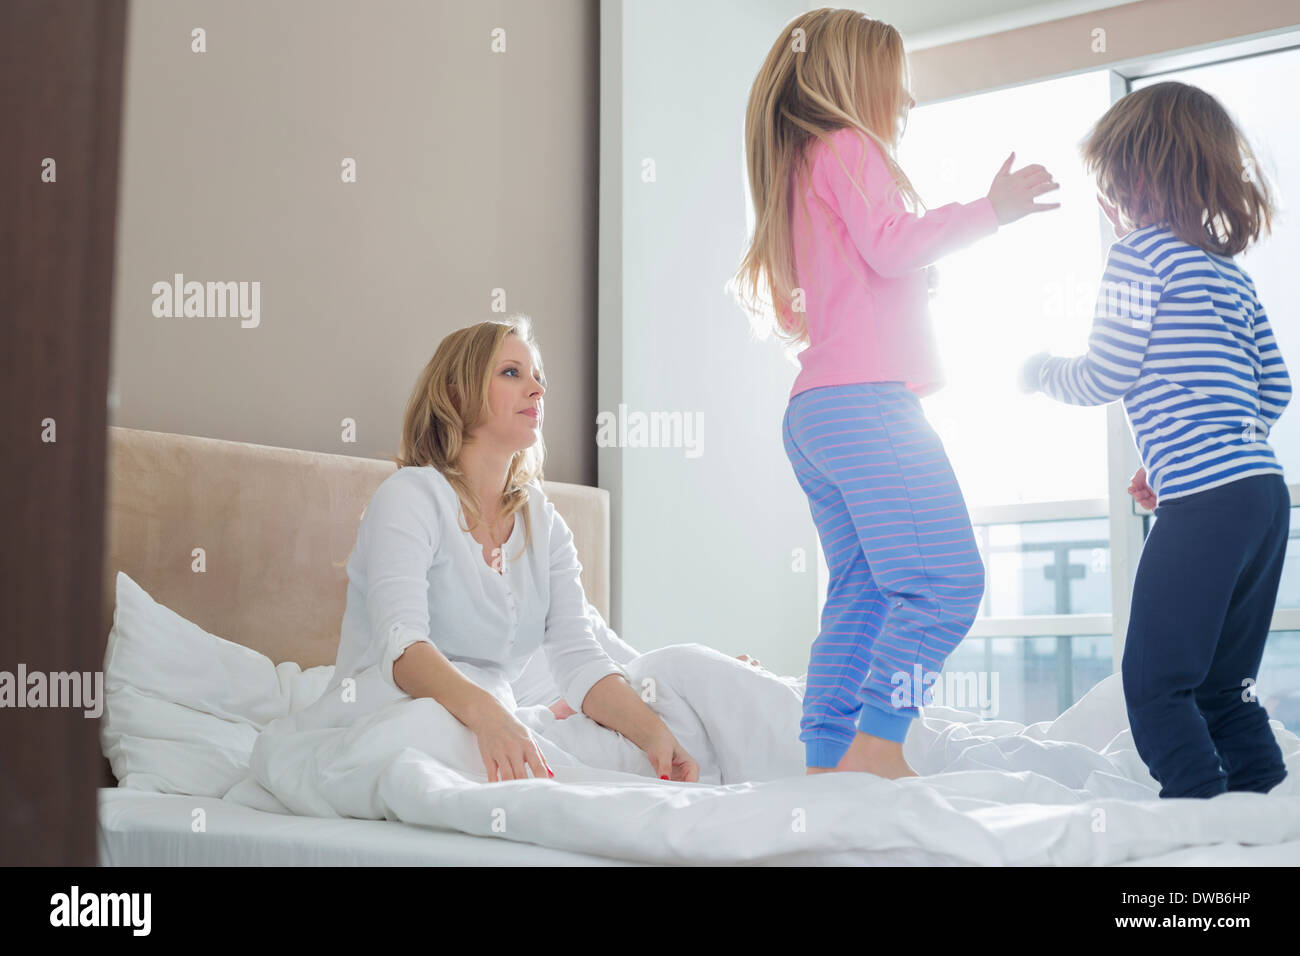 Mid adult parents looking at playful children in bedroom - Stock Image